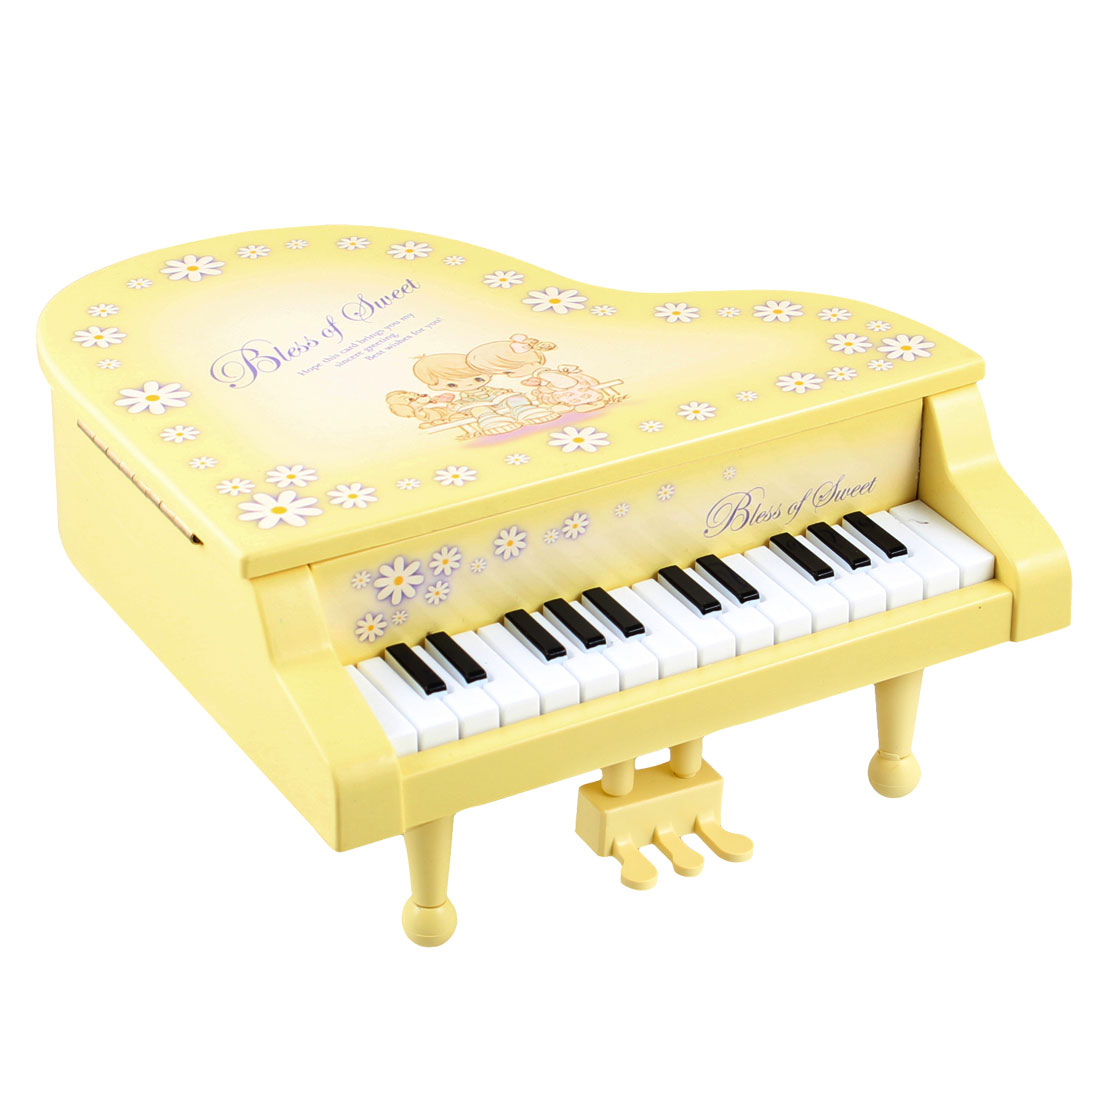 Interest Developing Plastic Piano Music Box Mini Model Gift Yellow